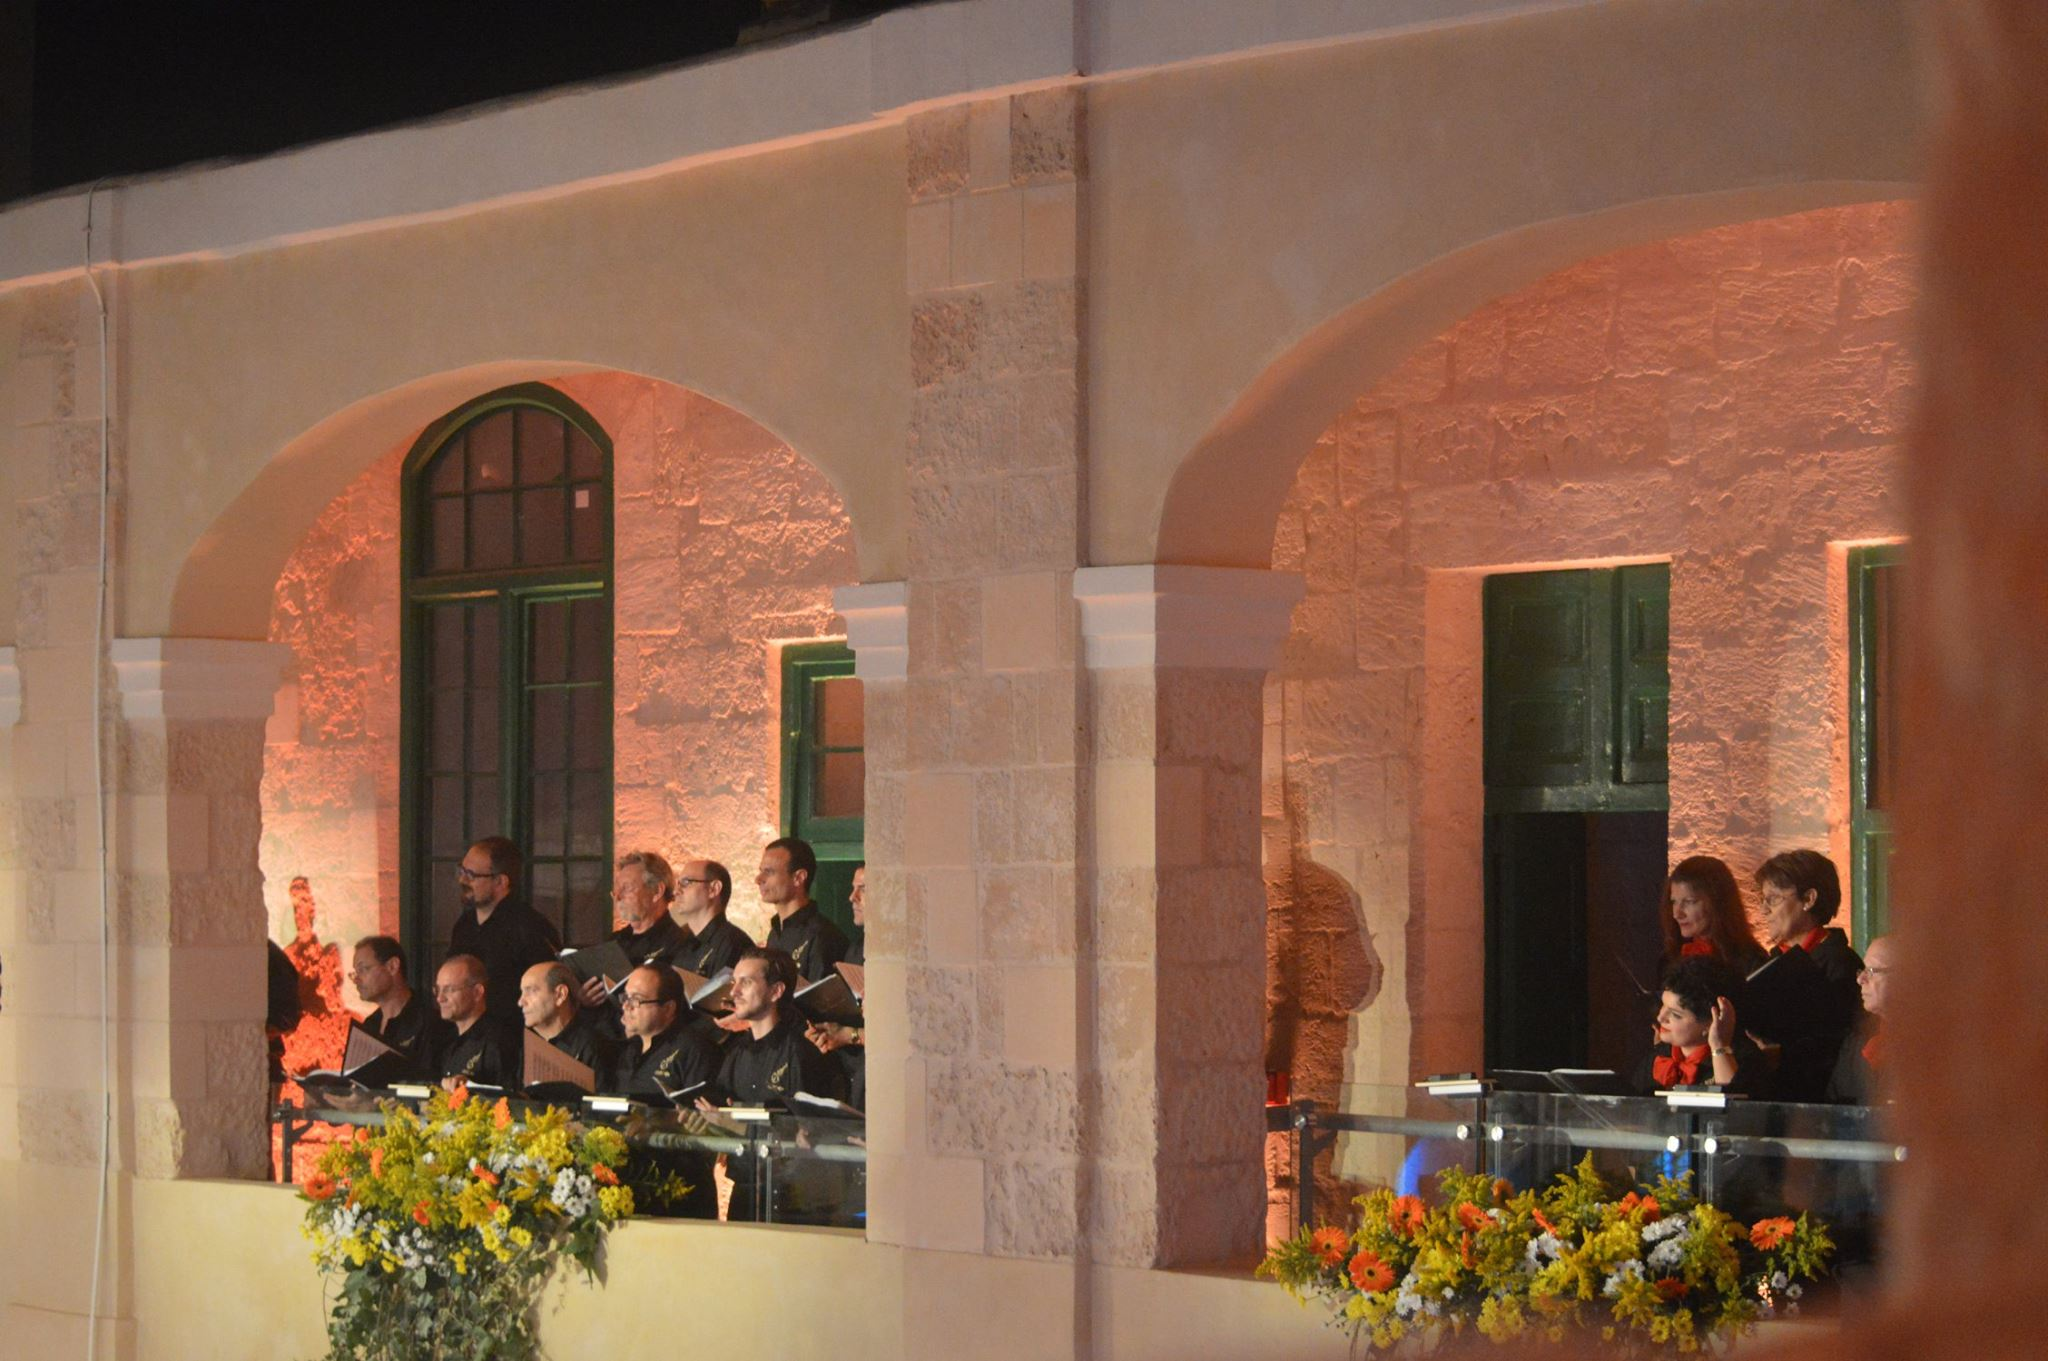 TNCS HSBC concert with the Malta Philharmonic Orchestra under the baton of Mro Wayne Marshall